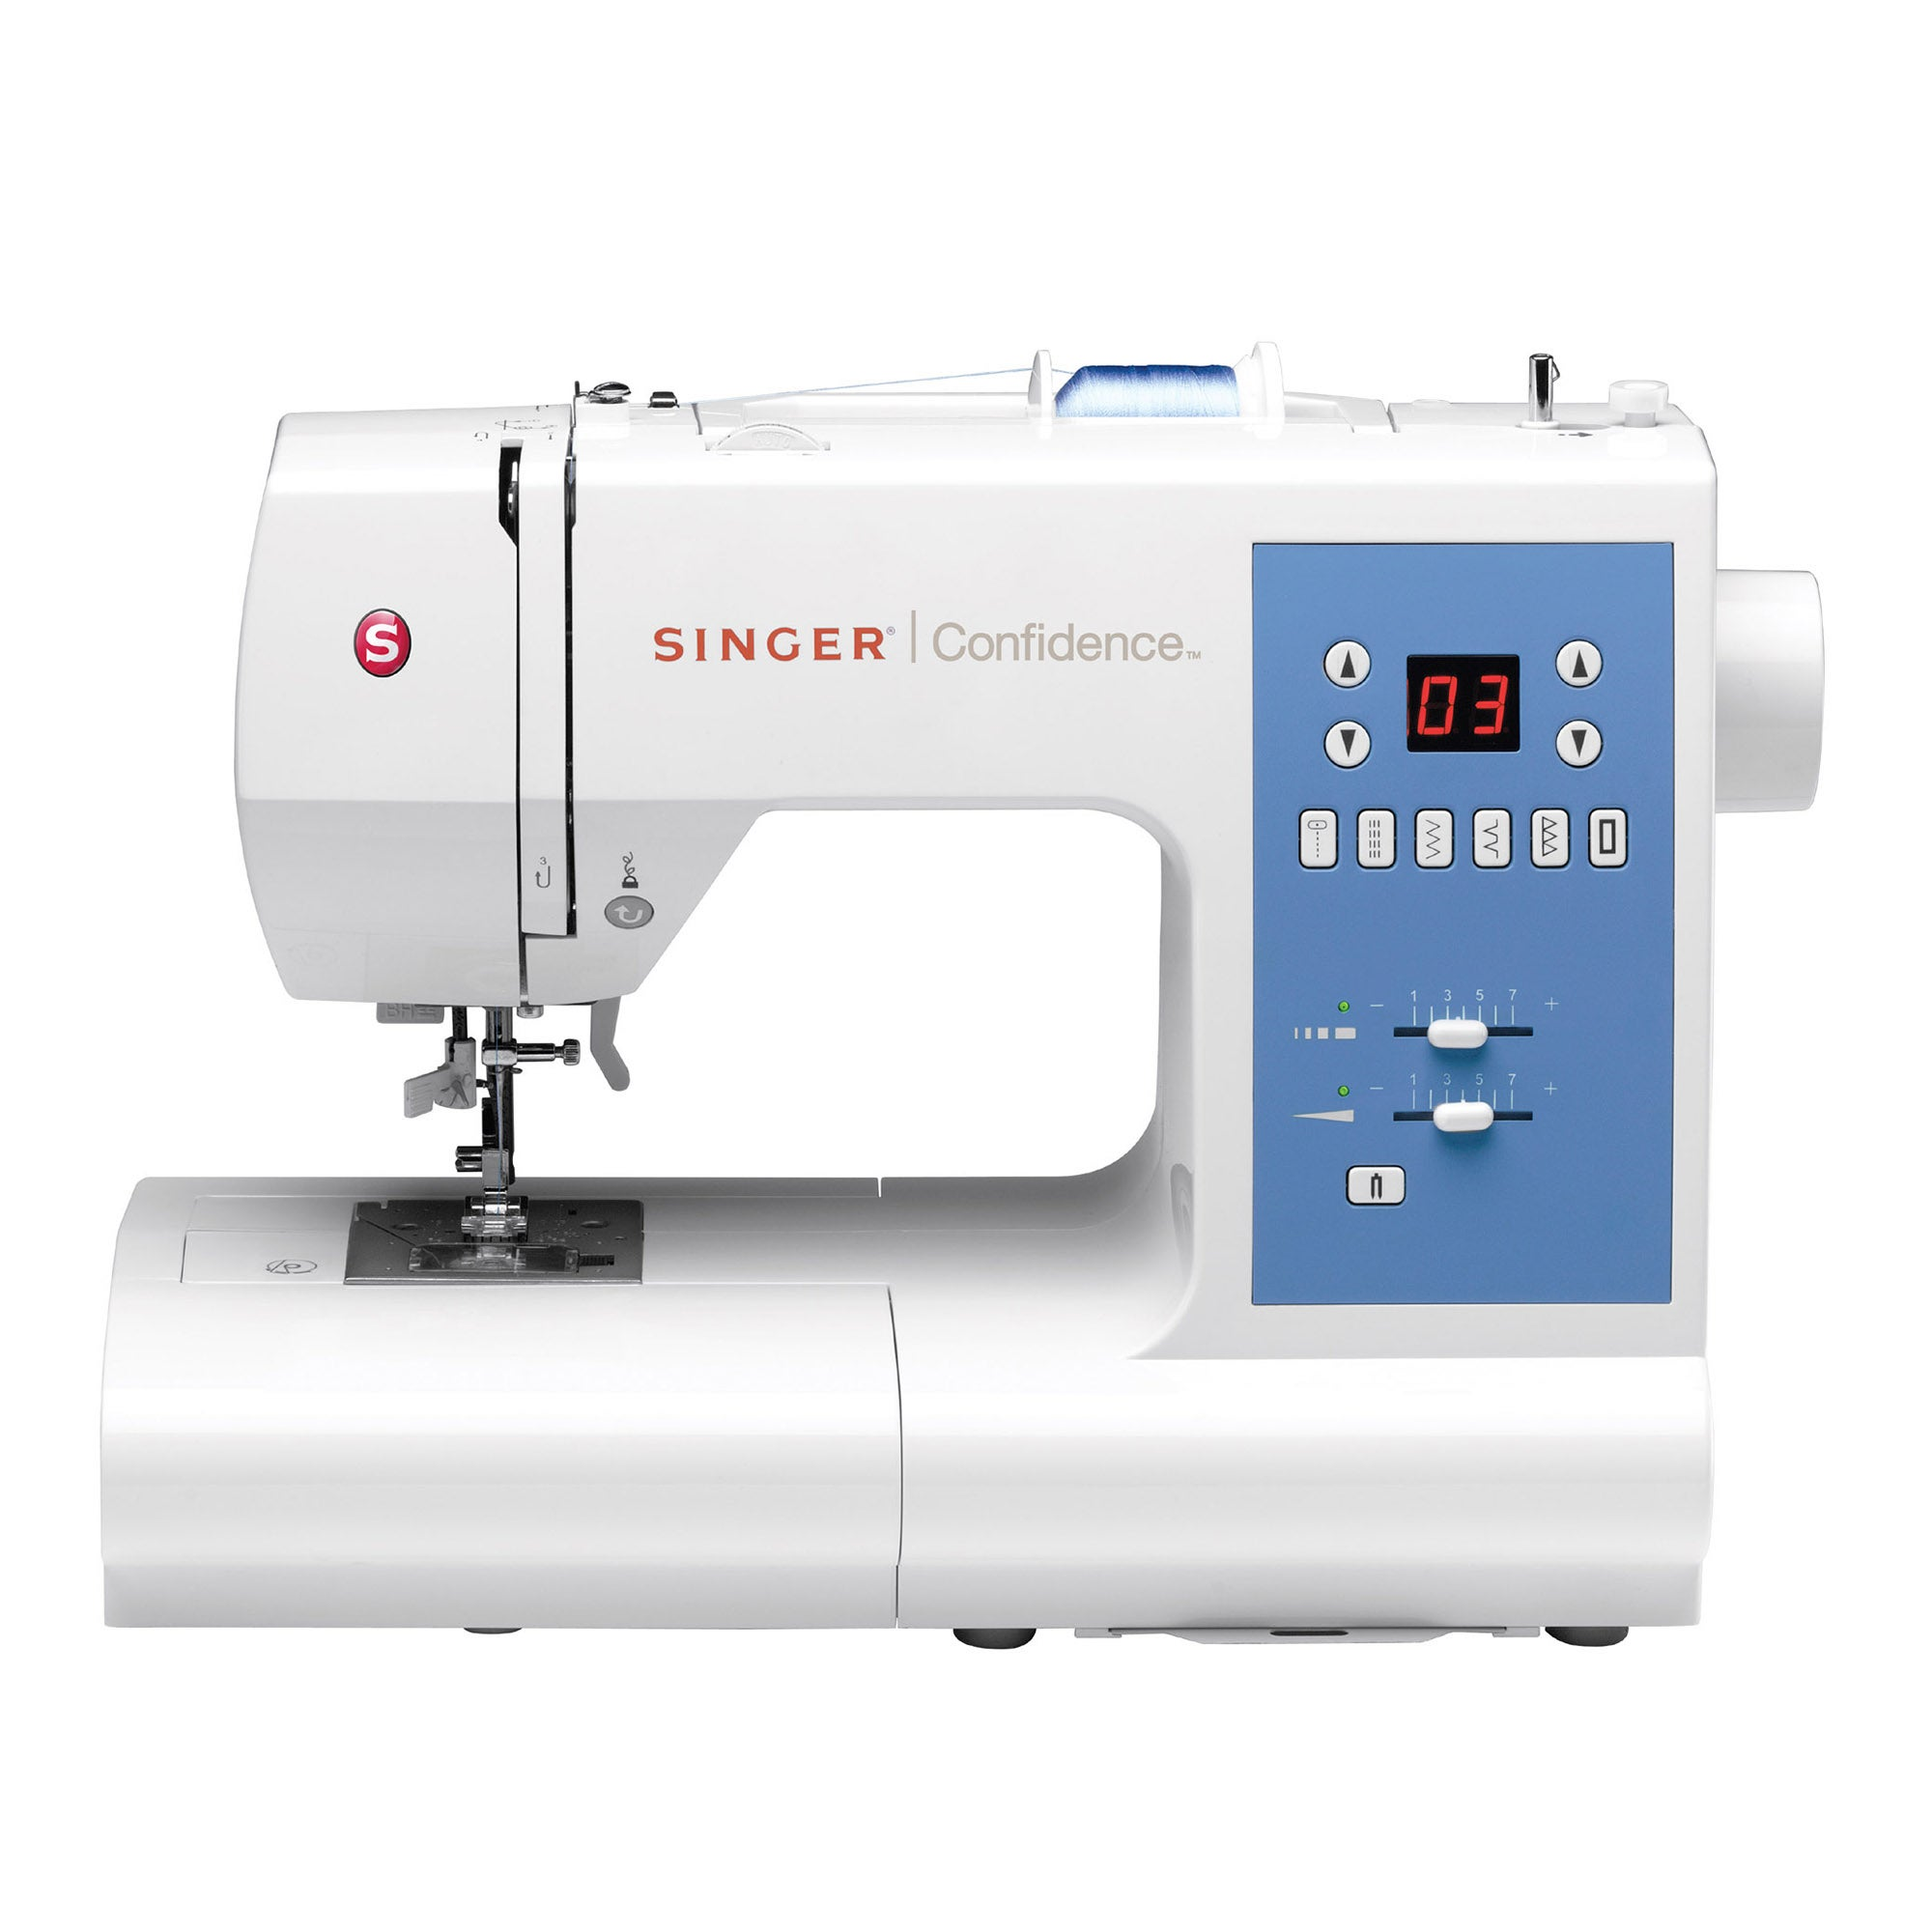 Singer 7465 Confidence Sewing Machine